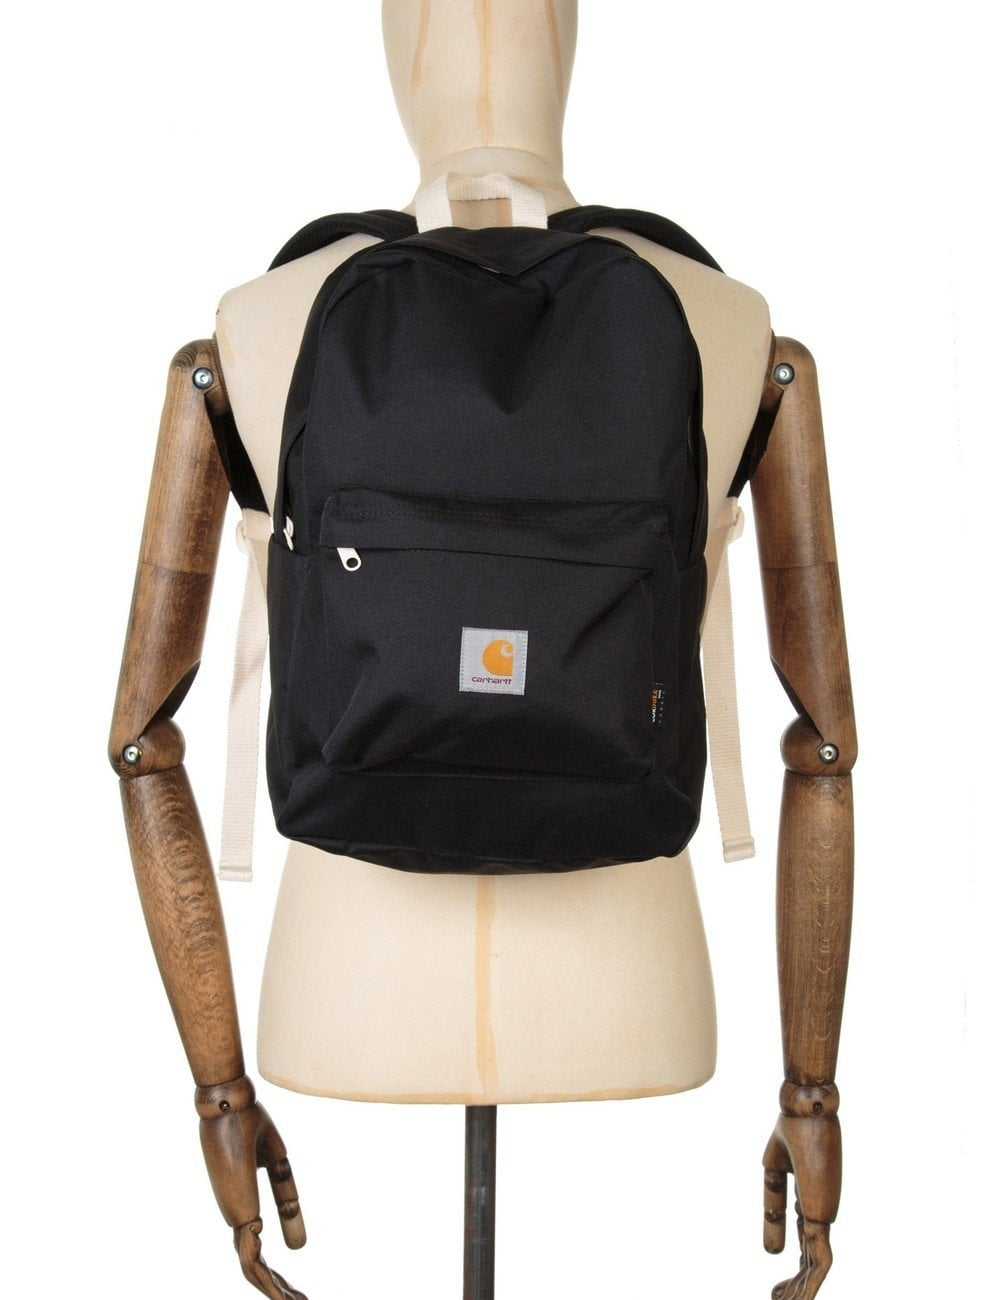 Carhartt WIP Watch Backpack - Black - Accessories from Fat Buddha ...